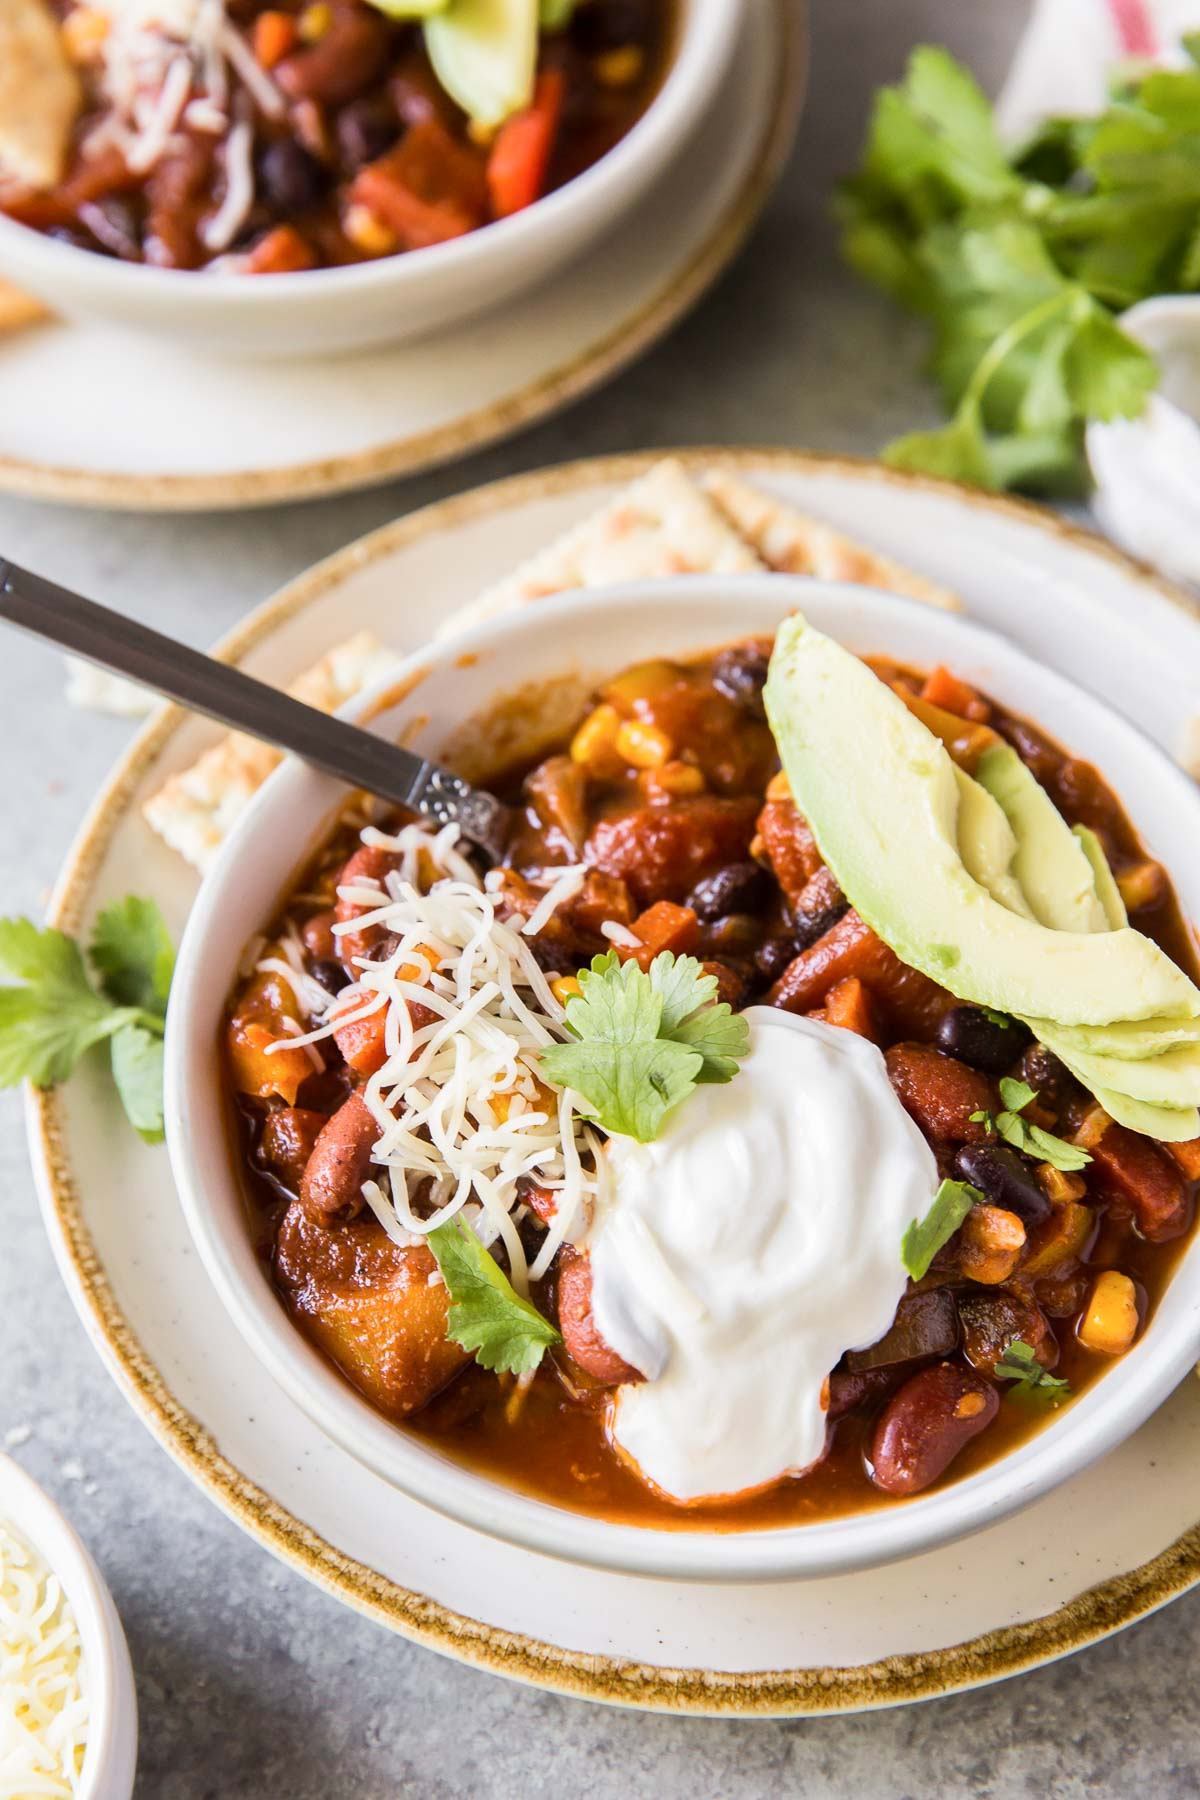 vegetarian chili in a serving bowl topped with sour cream, cheese and avocado